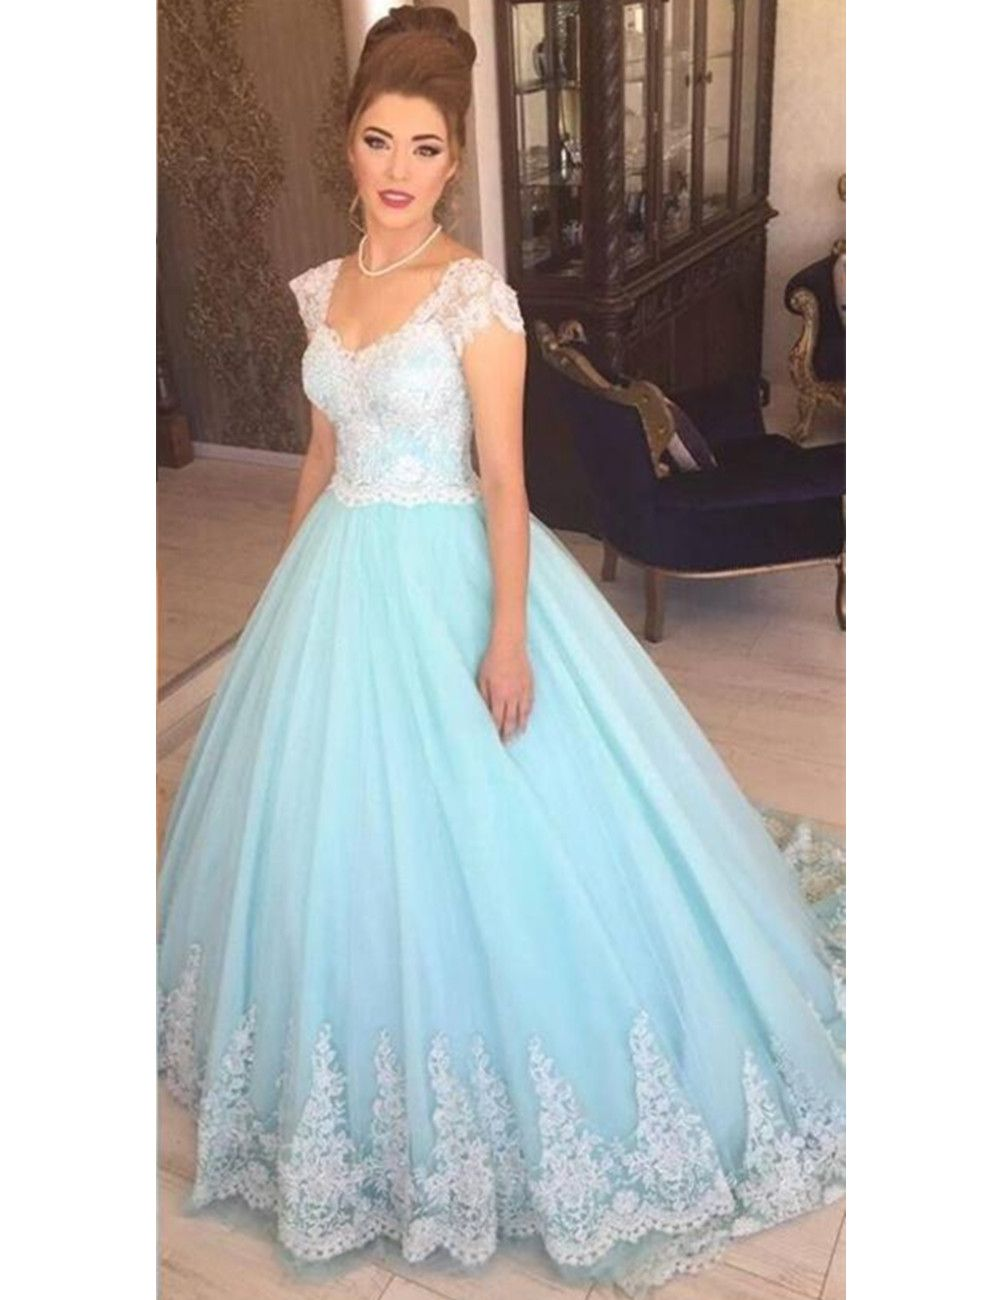 Light blue dress for wedding  Click to Buy ucuc Ball Gown White and Light Blue Wedding Dresses Cap